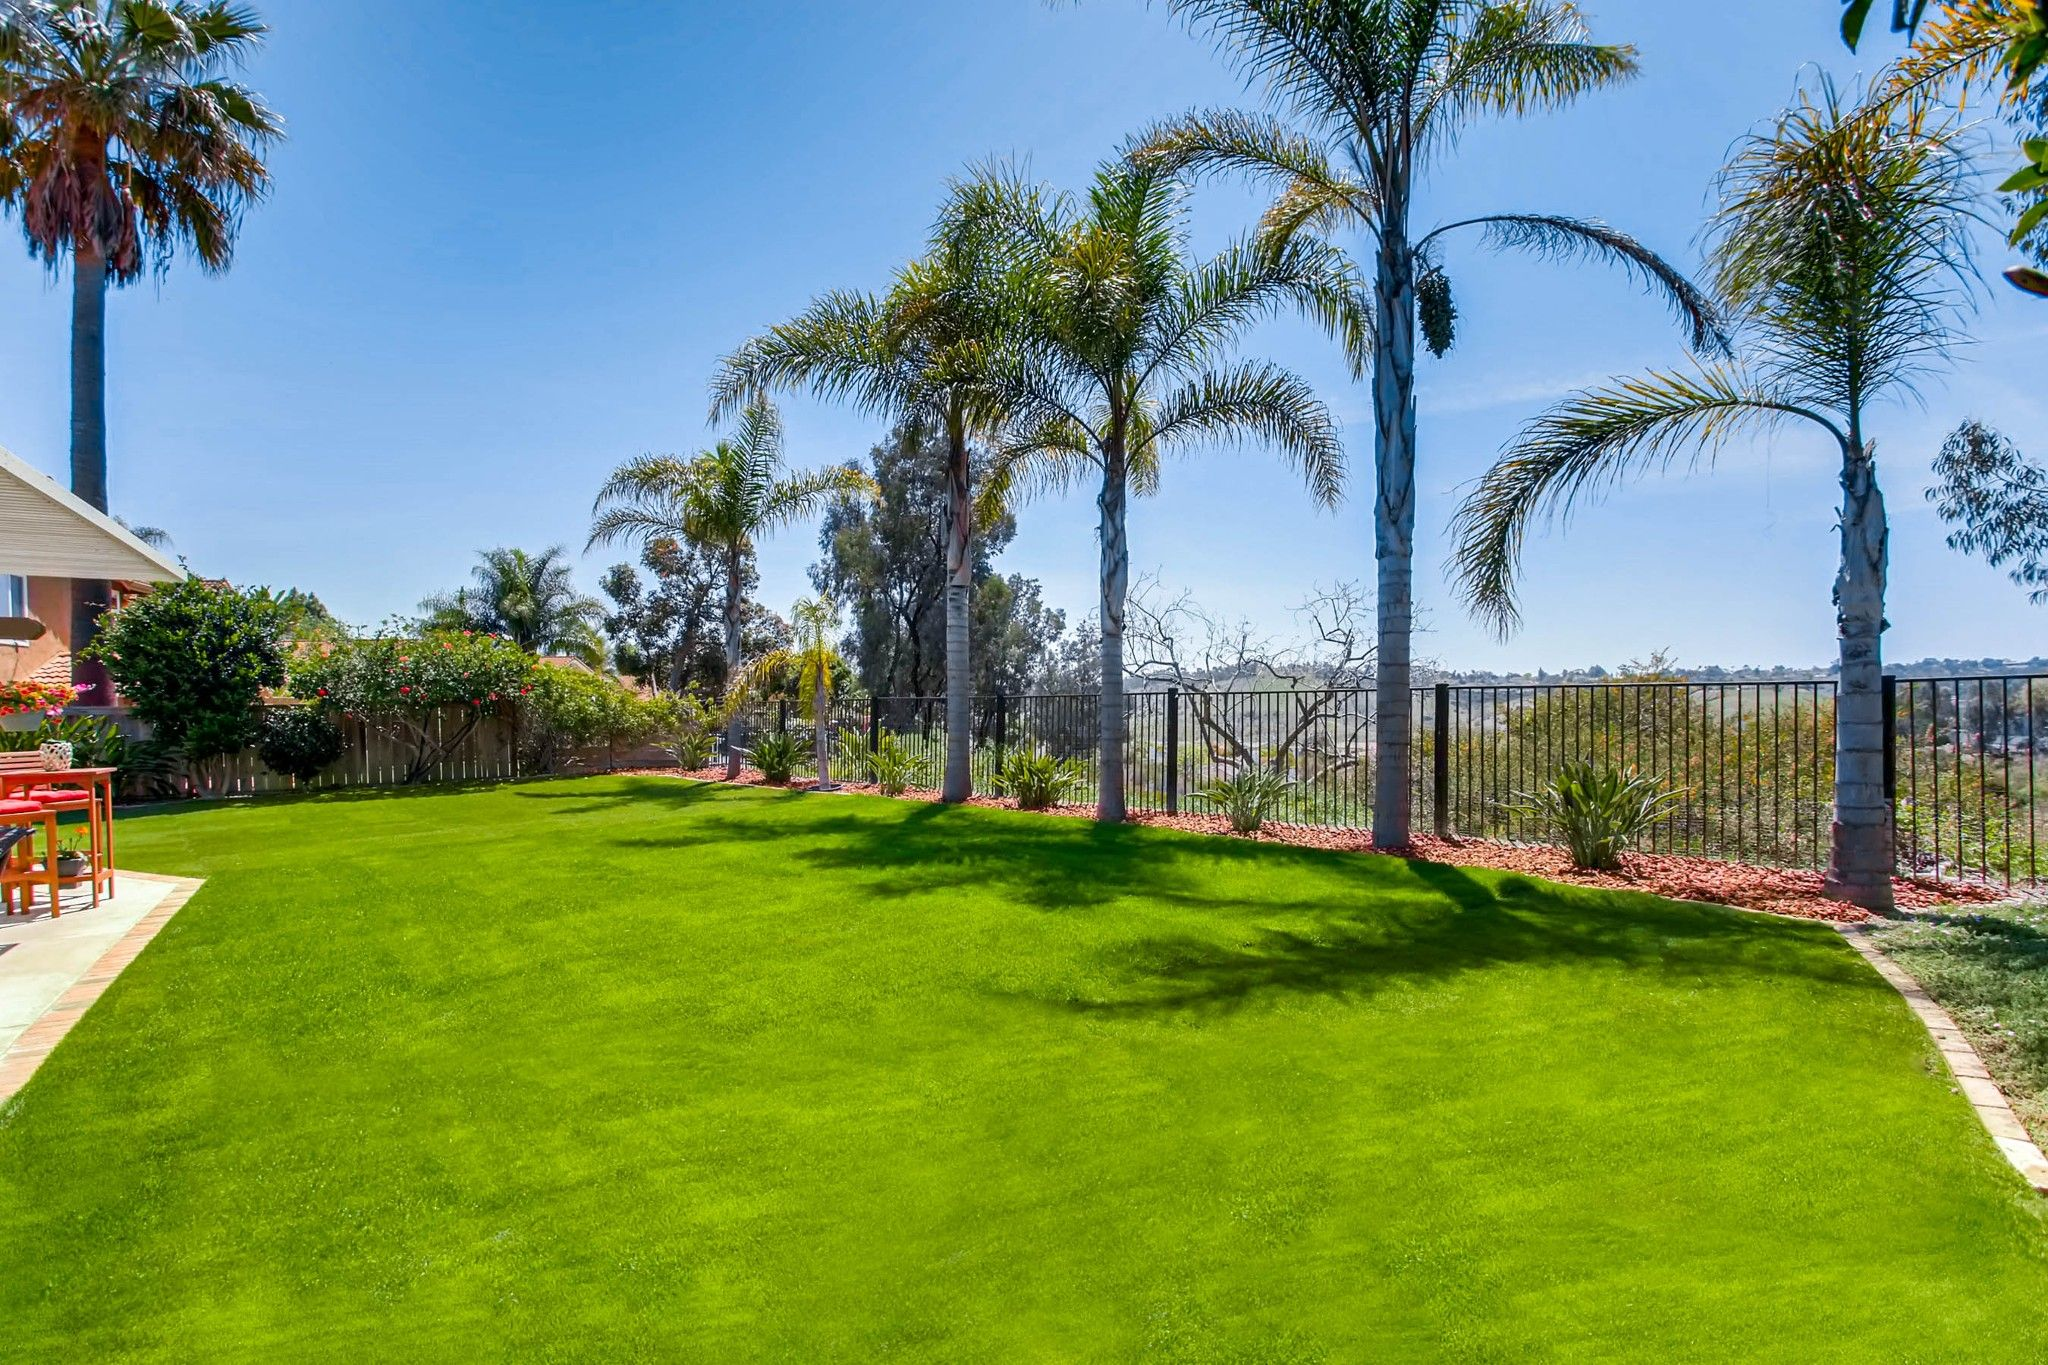 Photo 6: Photos: House for sale (San Diego)  : 5 bedrooms : 3341 Golfers Dr in Oceanside